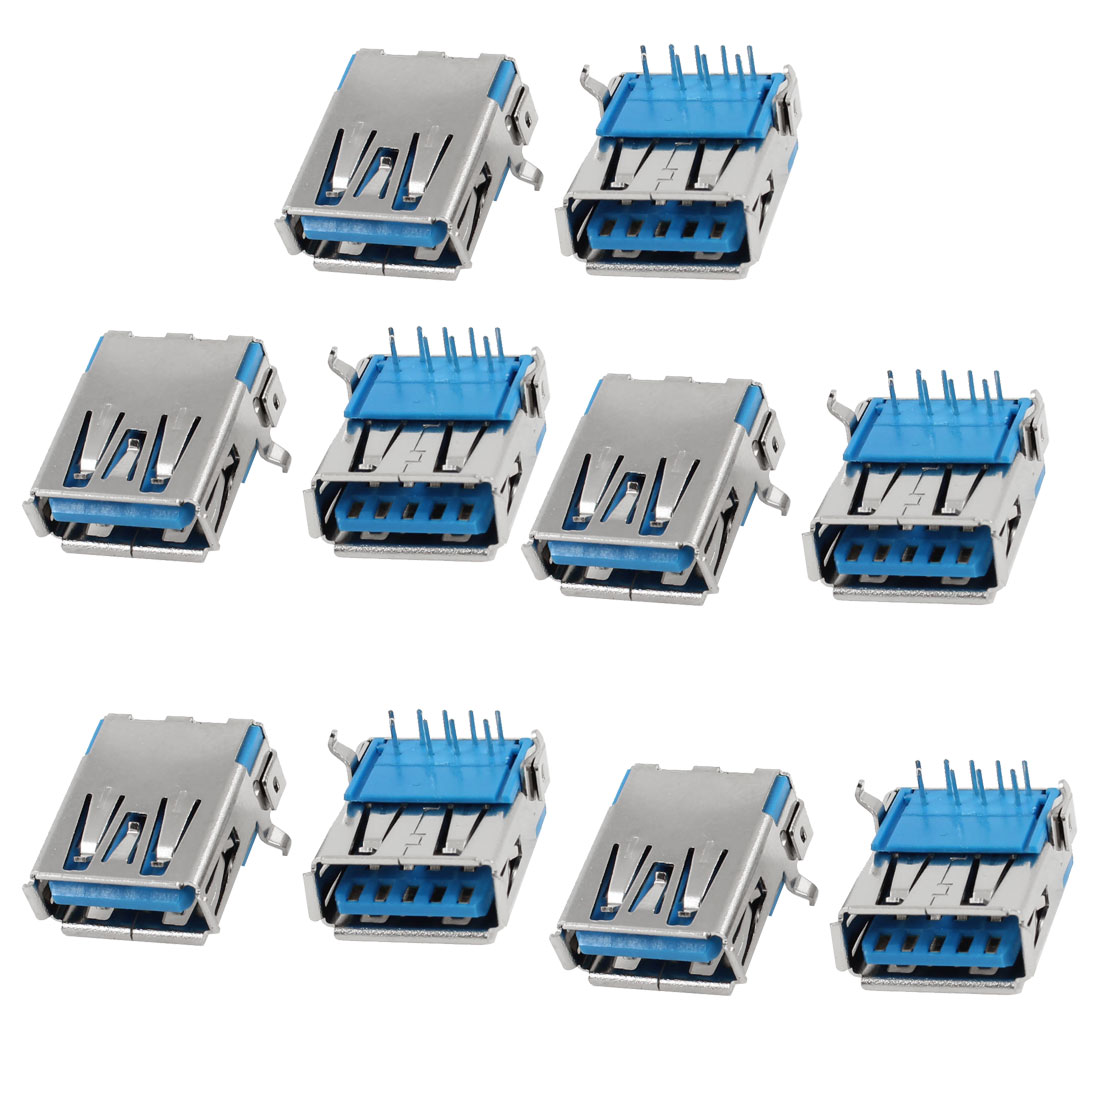 Unique Bargains 10pcs PCB Mounted Right Angle DIP Female USB 3.0 A Jack Socket